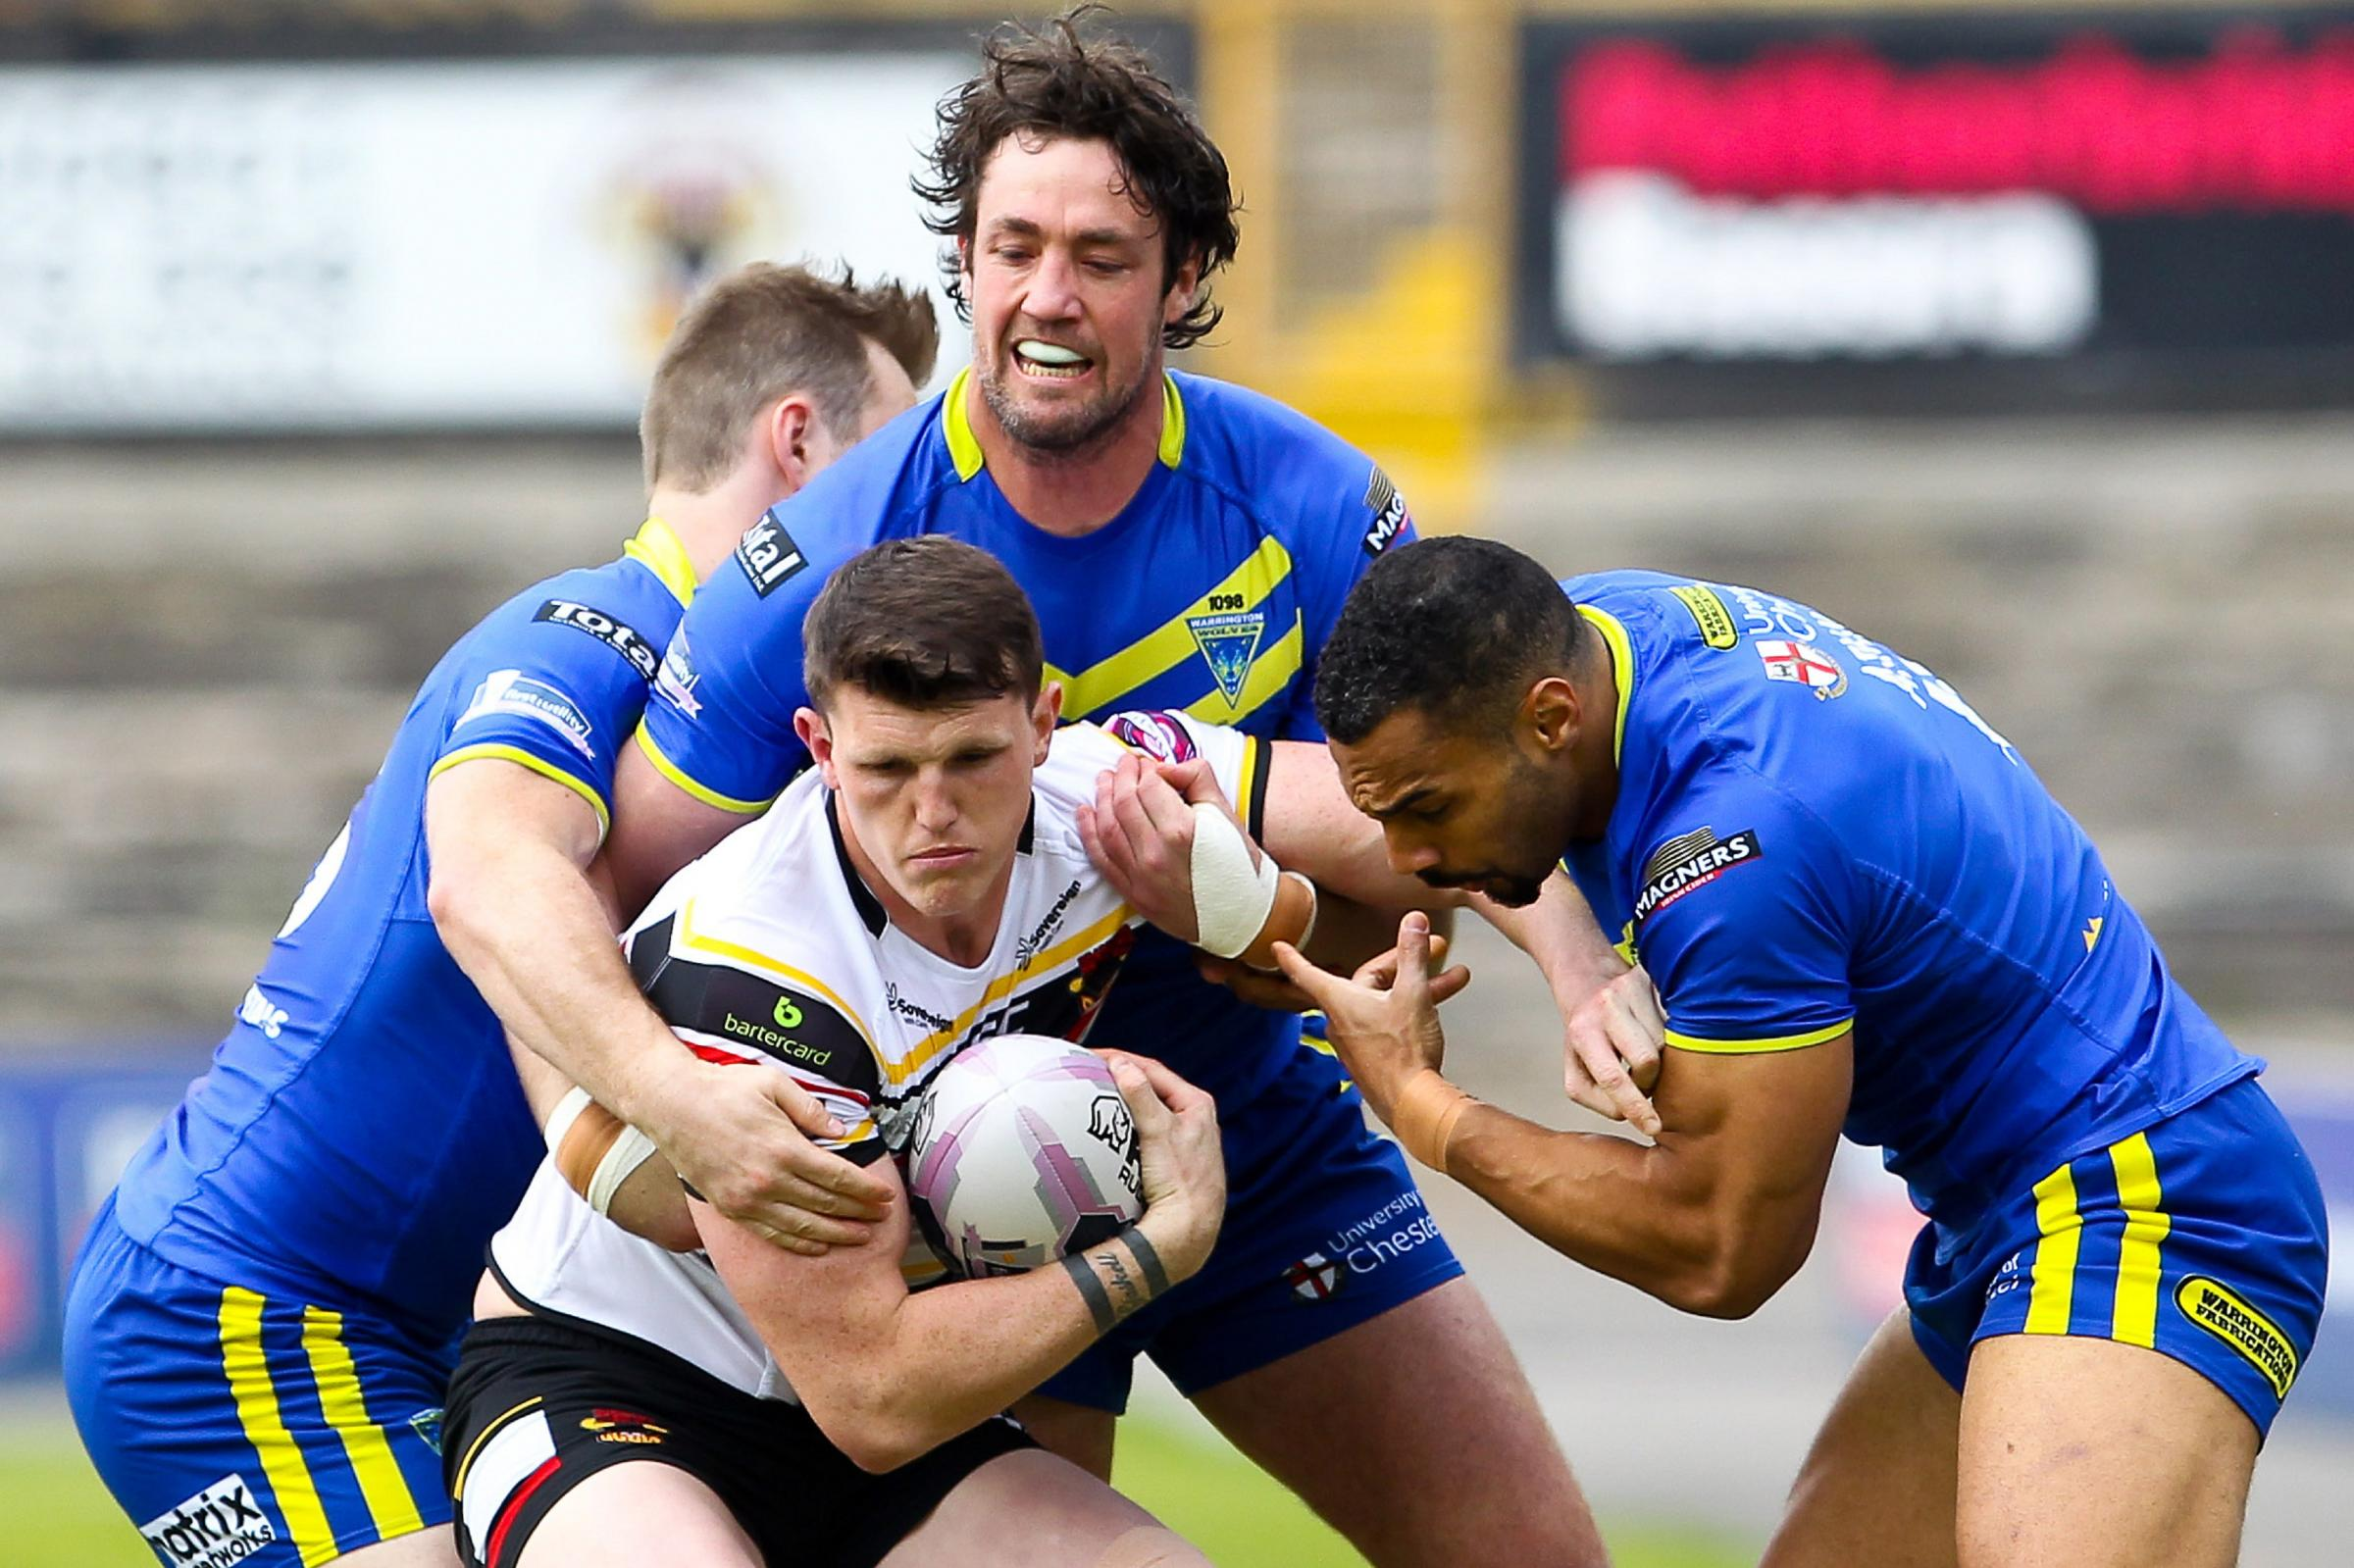 Lee Gaskell claimed three assists in the win over Warrington. He is now aiming to make Saints his third victims in a row since his successful switch to full back